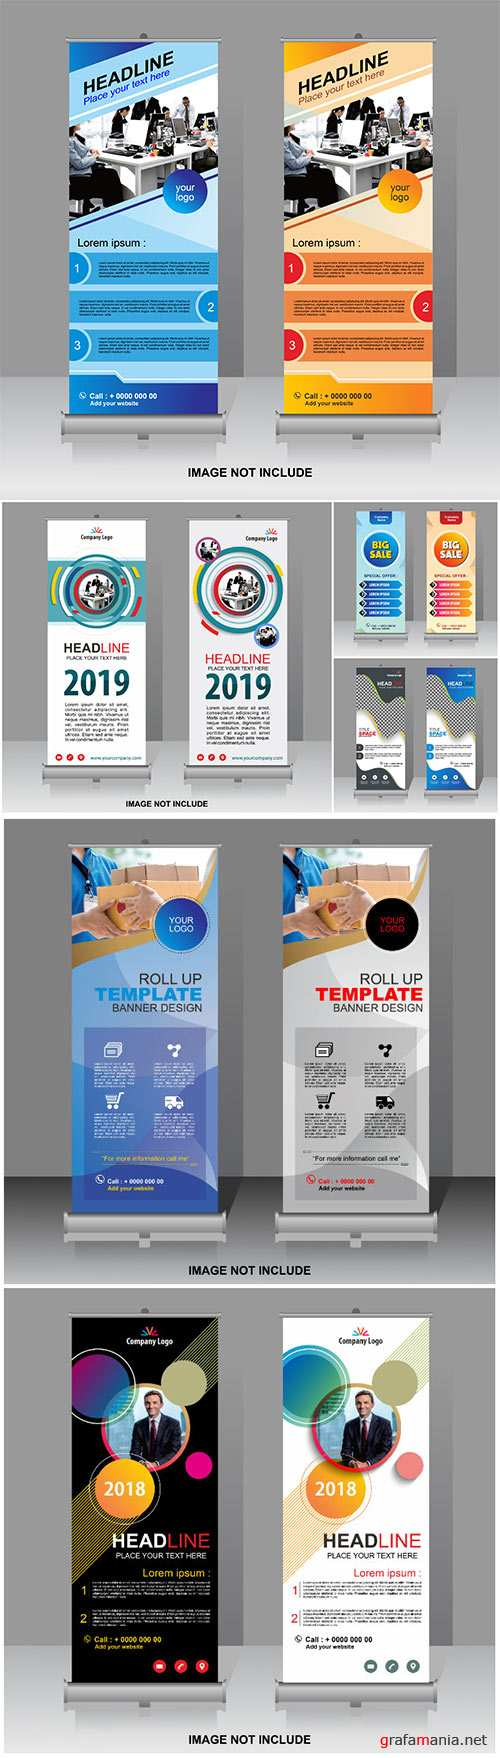 Roll up banner vector template, company logo